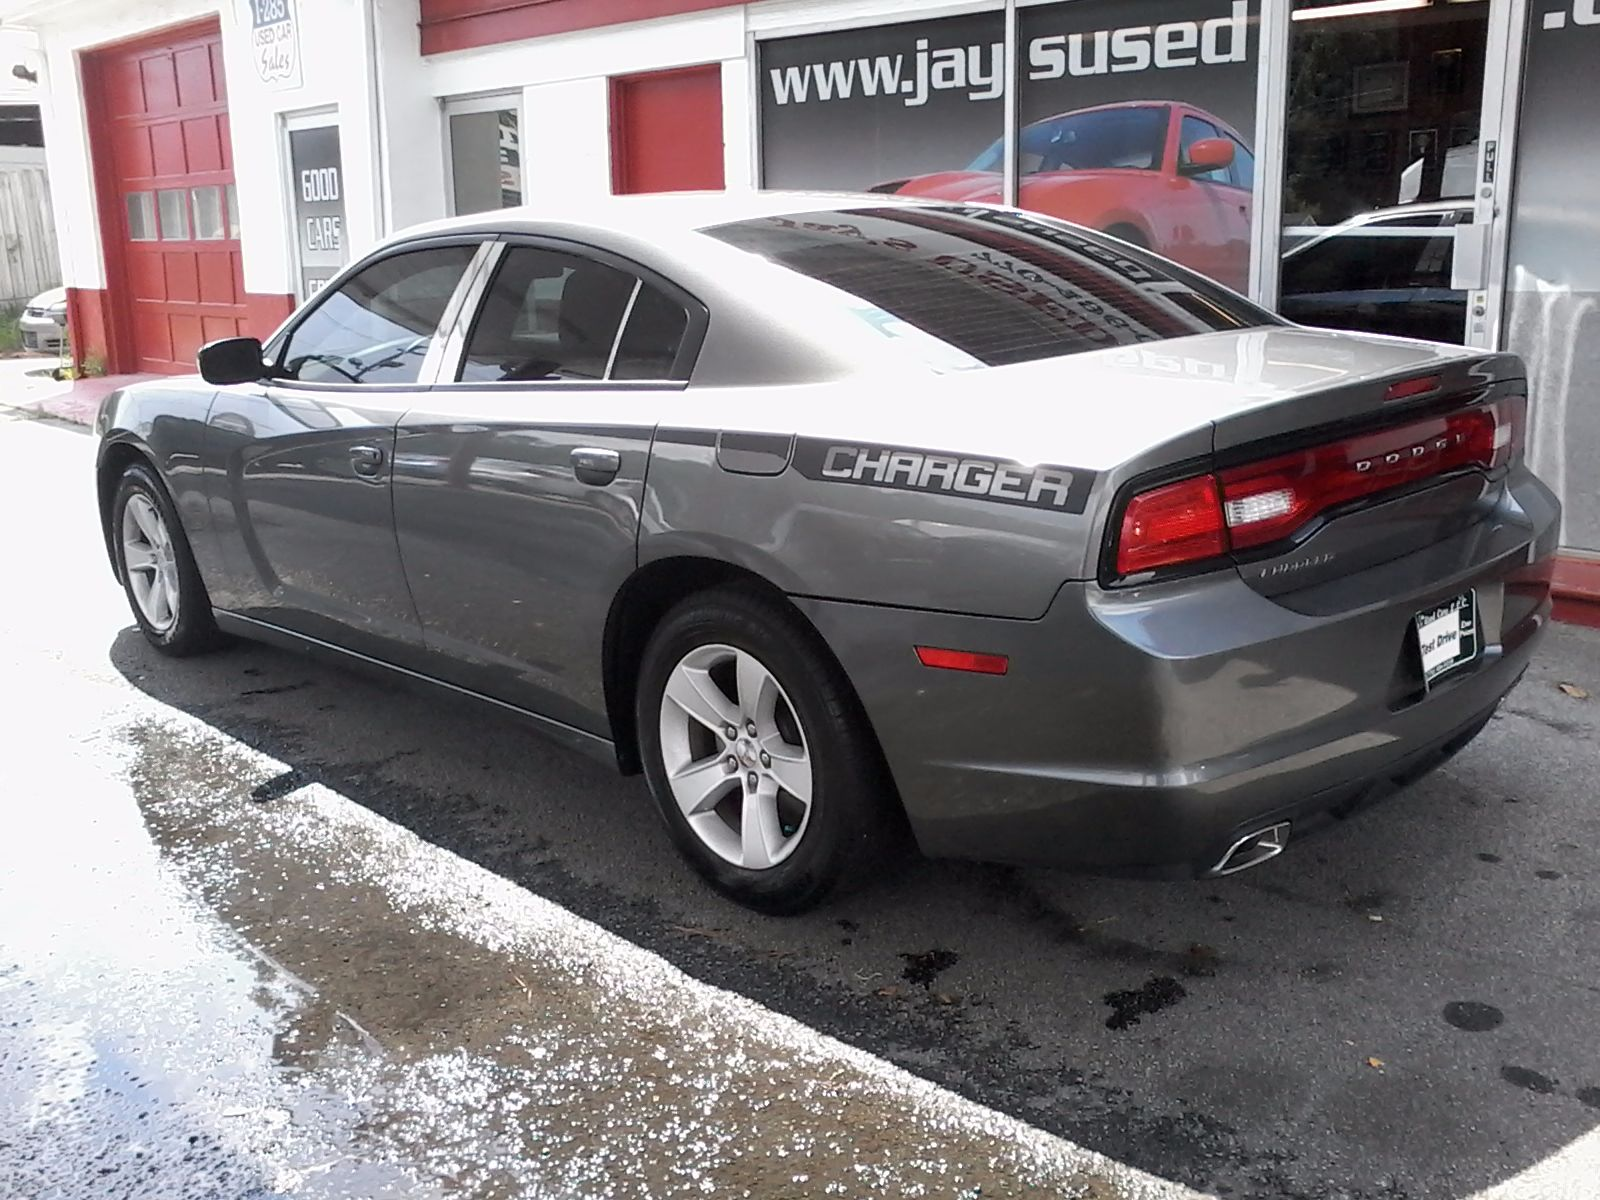 Photos of a Used 2012 Dodge Charger SE at Jay\'s Used Cars LLC